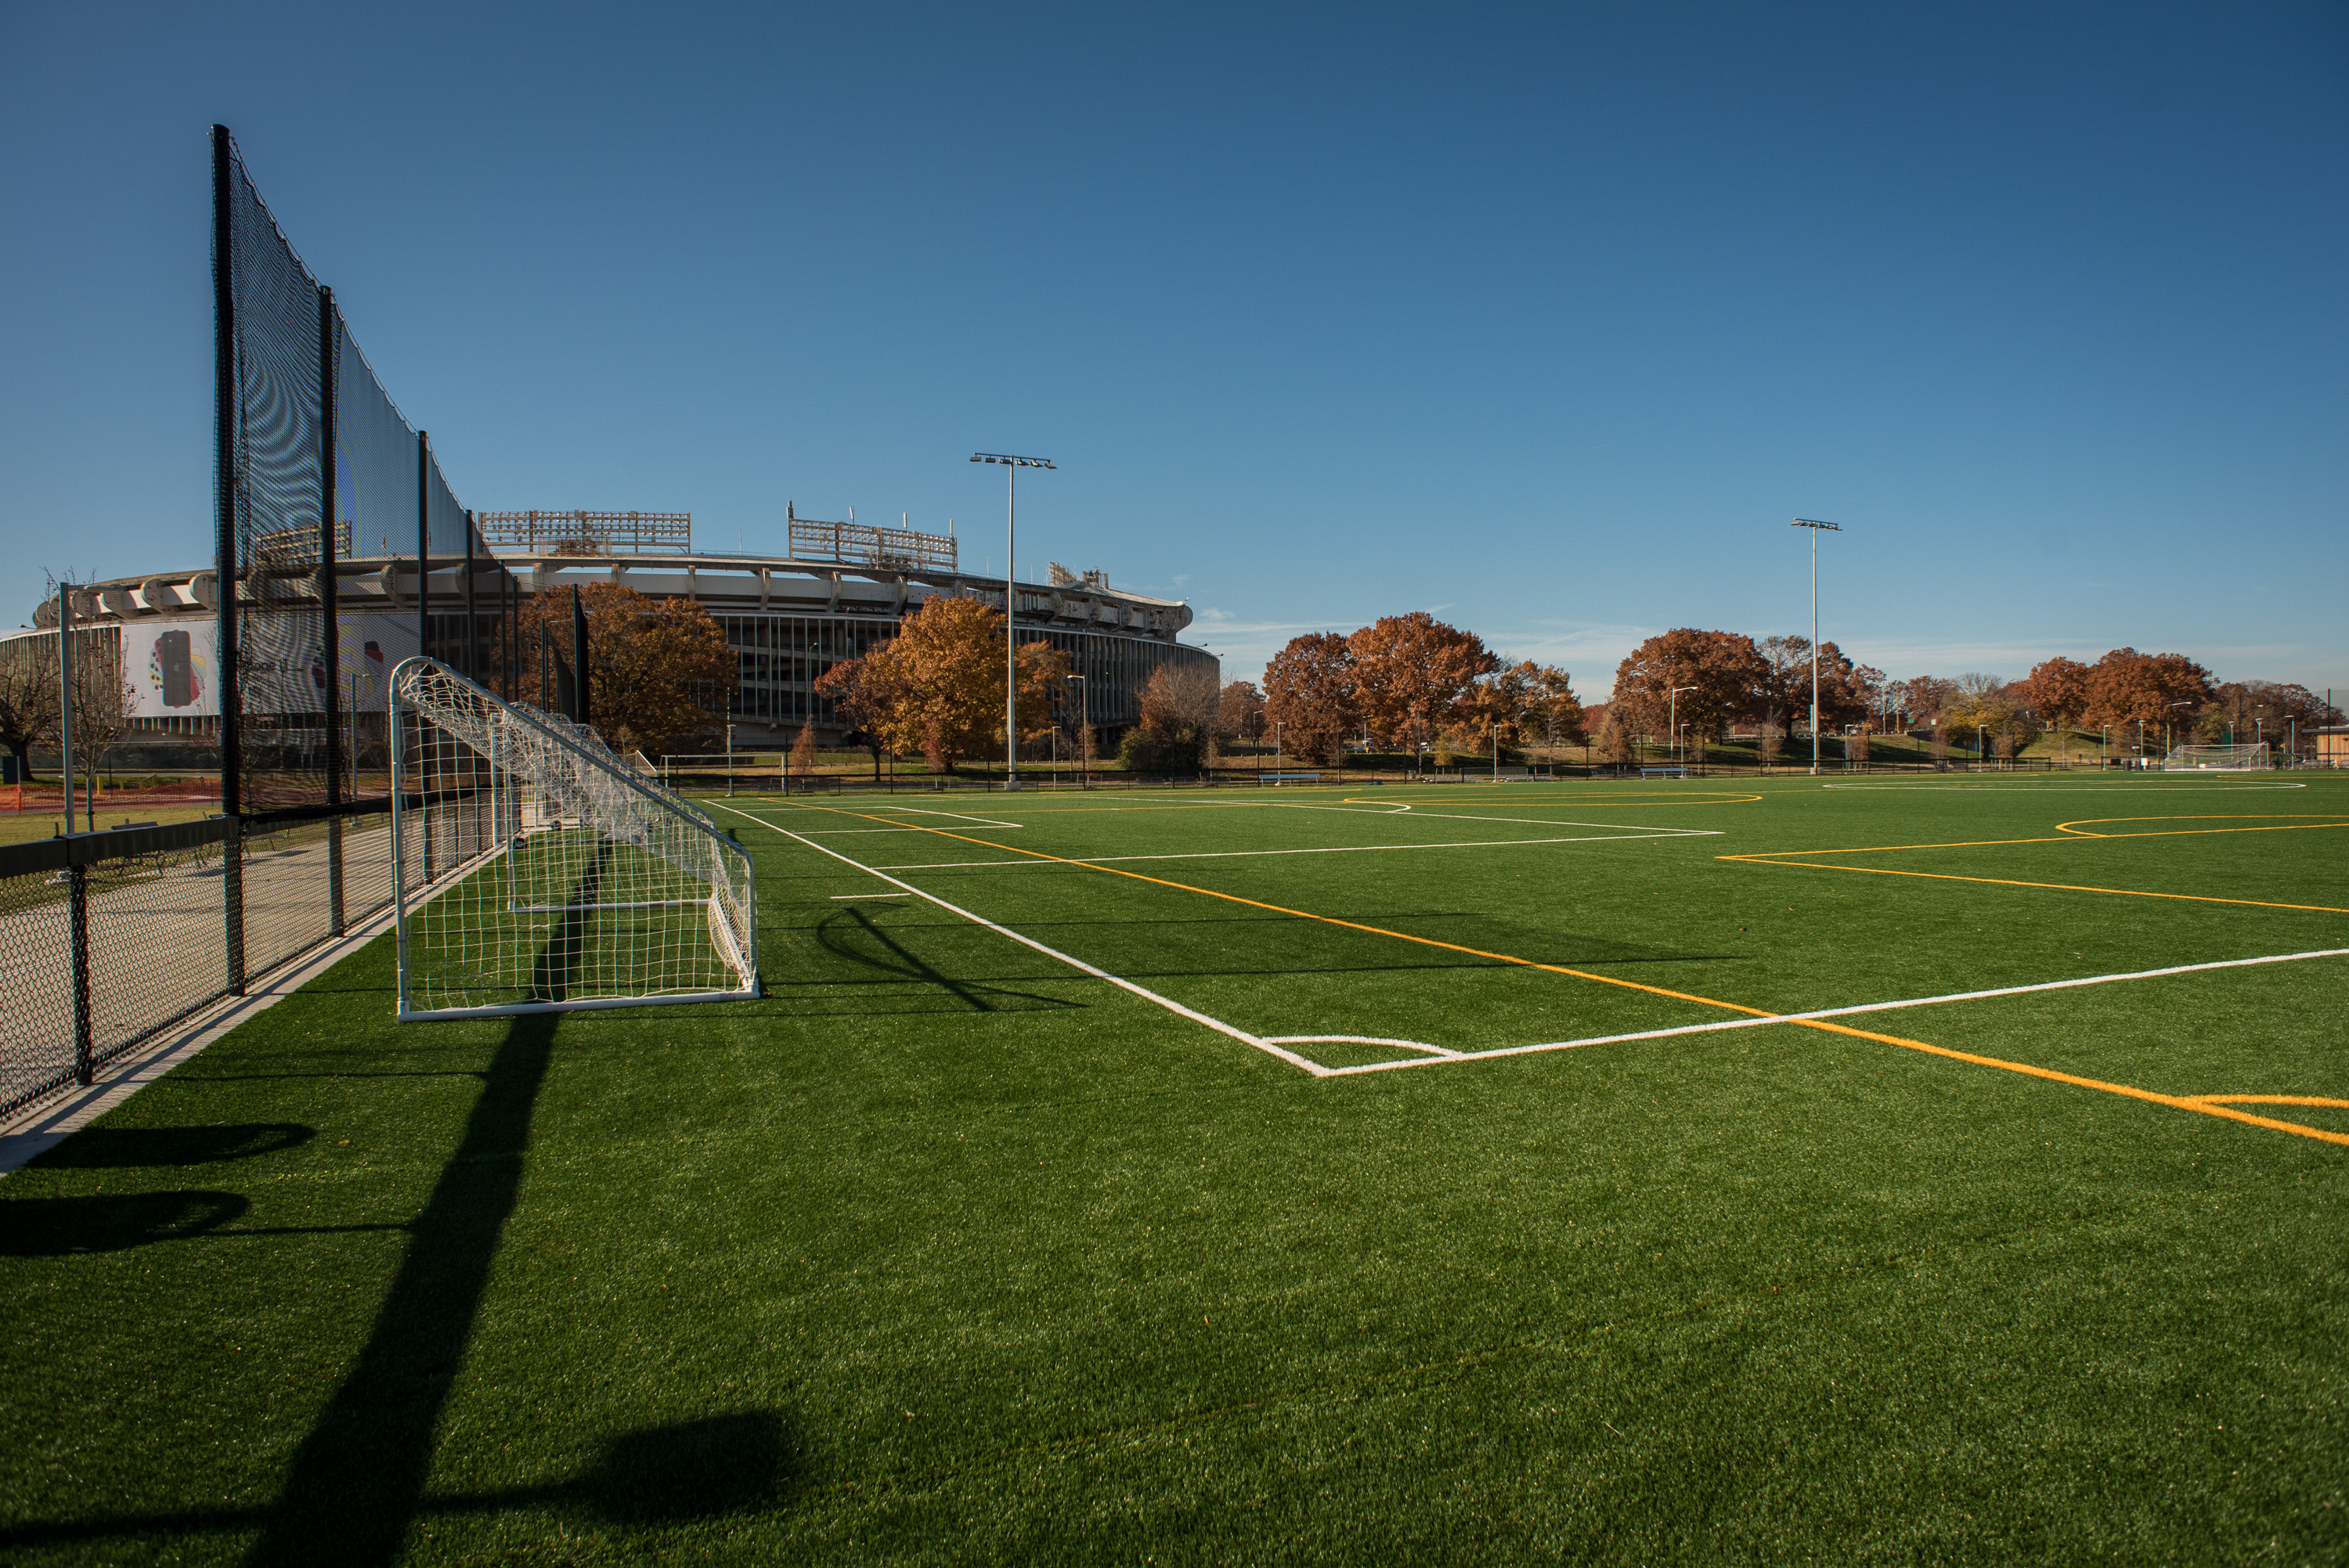 The Fields at RFK Campus